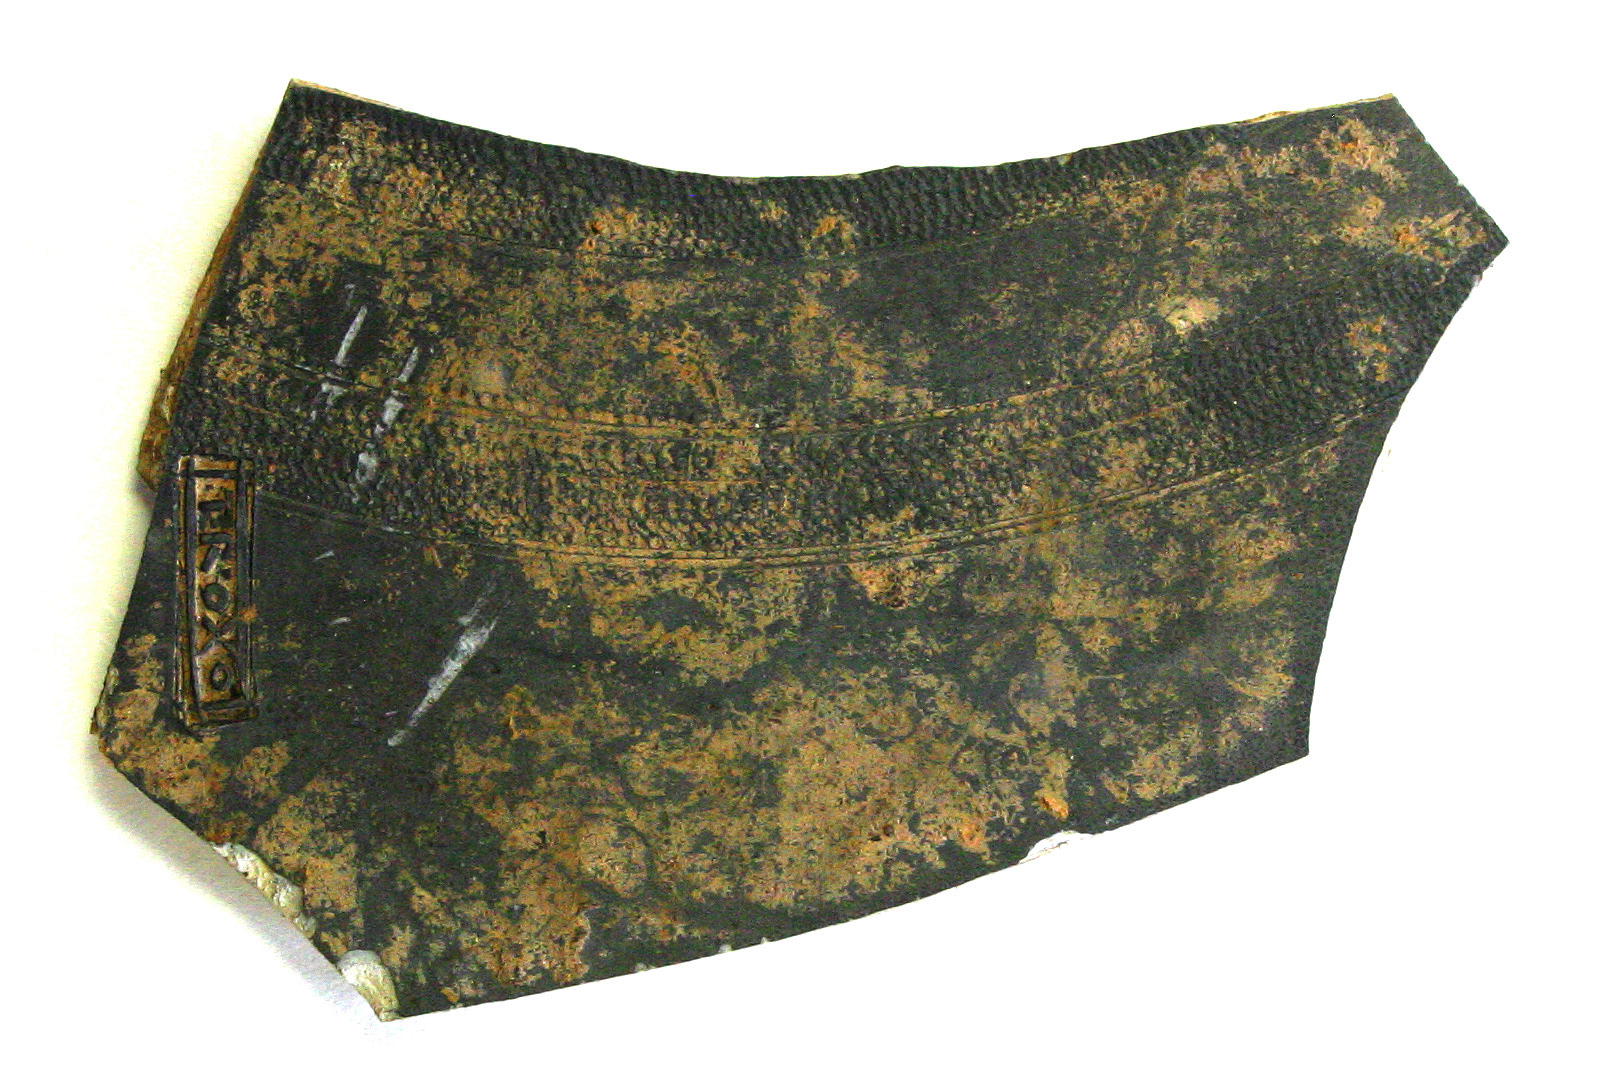 Decorated Roman pottery with makers mark from Blackfriars - Credit : Wardell Armstrong Archaeology